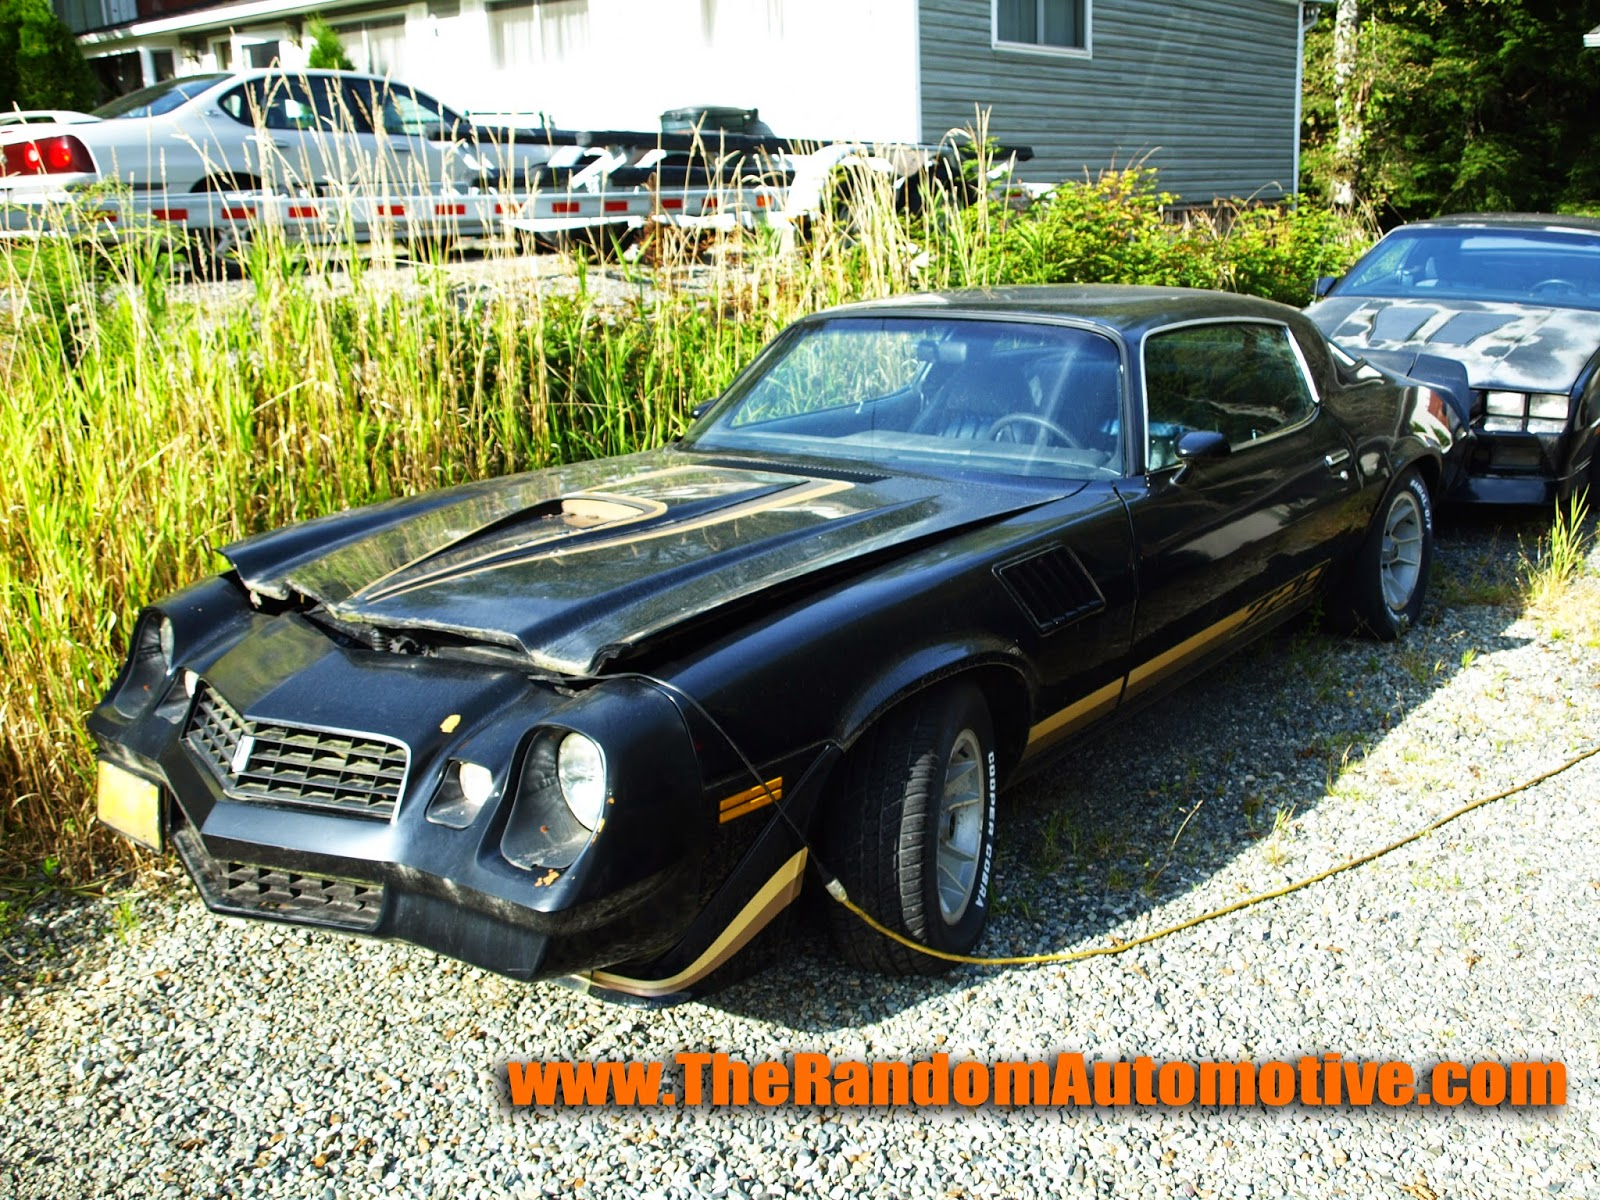 1979 z28 camaro chevy chevrolet alsaka ketchikan black the random automotive dylan benson abandoned